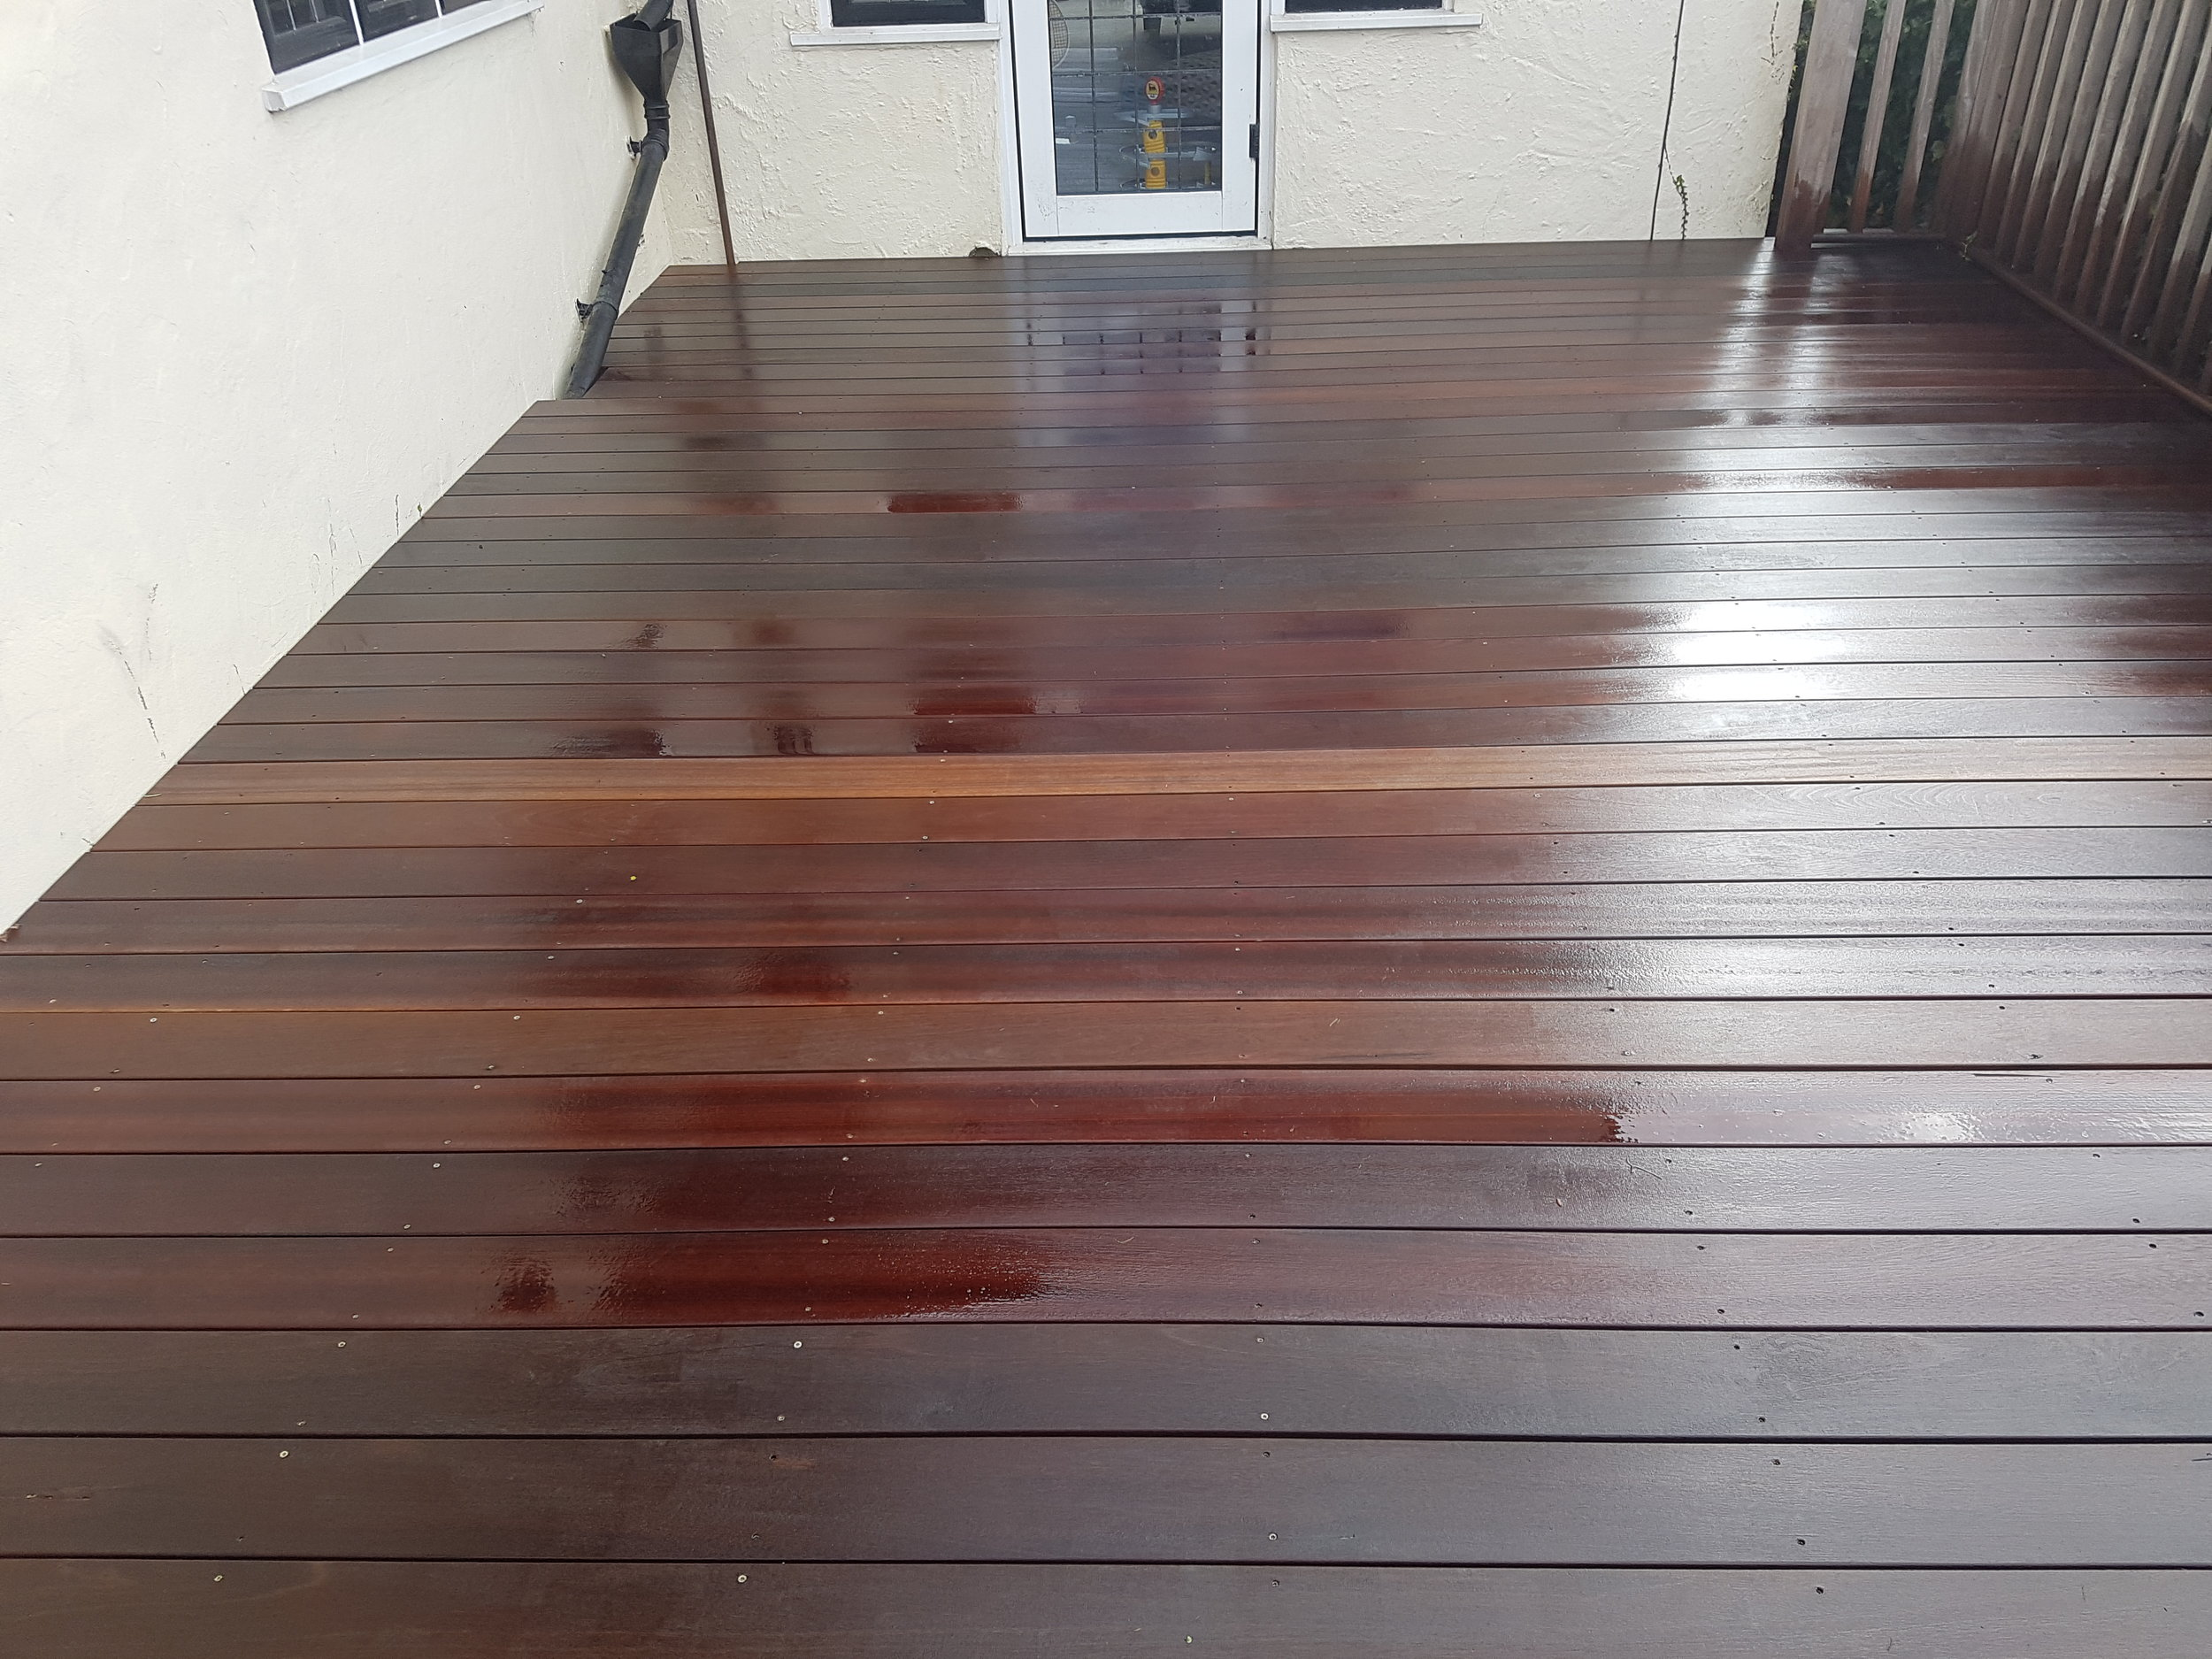 Green moss and algae in particular will make maintenance a proble. - Green moss and algae in particular will make maintenance a problem for most homeowners. If the timber decking is not kept free from algae and other forms of surface growth, the wood can become old, tired and drab looking and worst case sanario the timber decking will break down and rot..